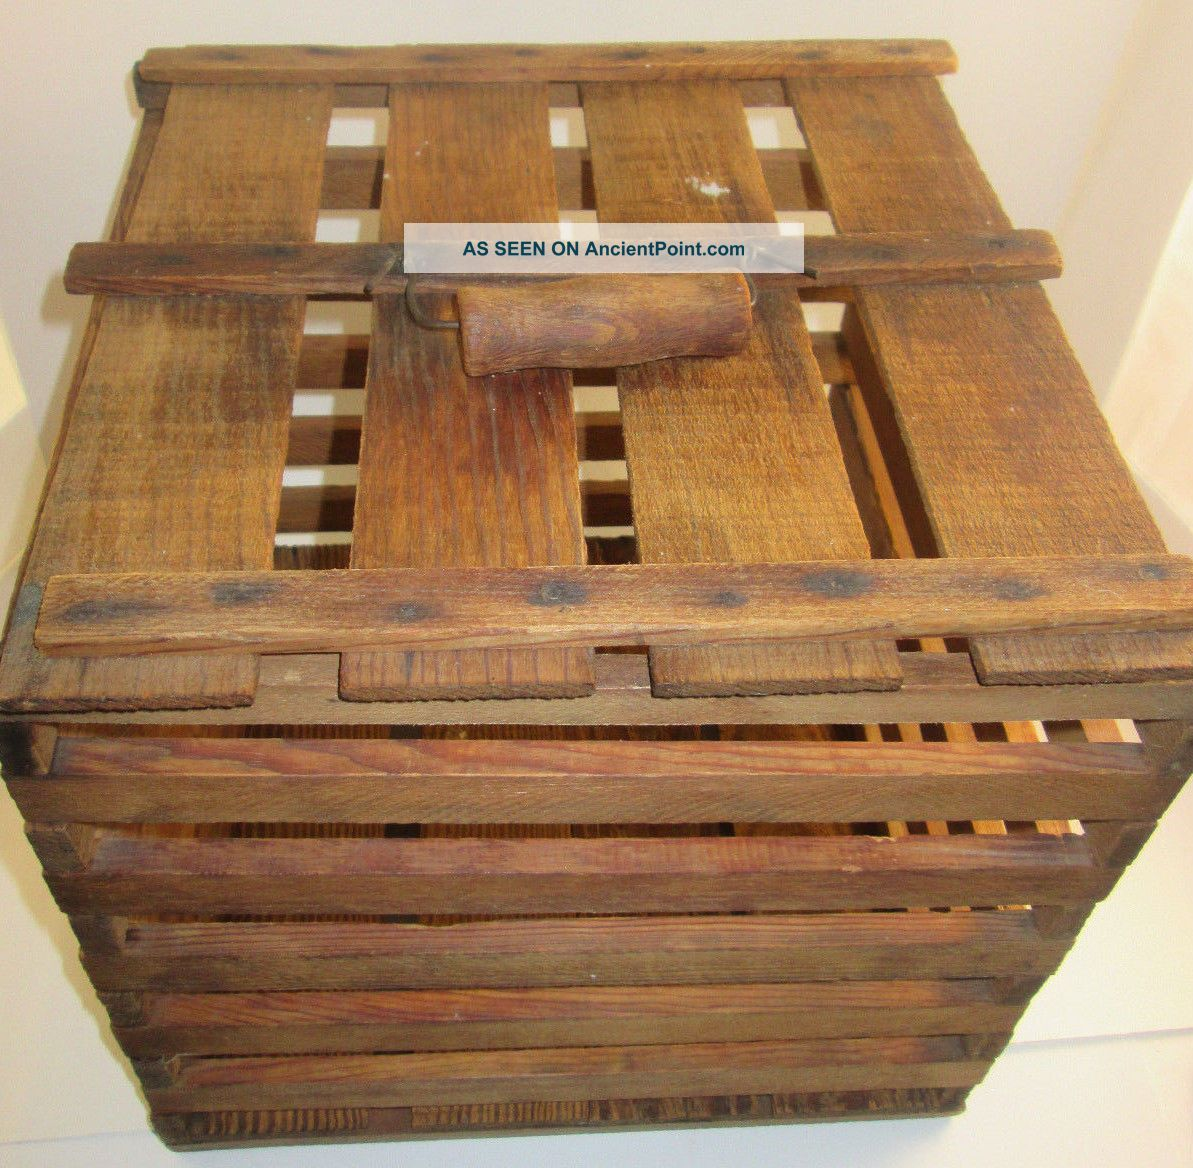 Egg Crate Wood Antique Vintage Primitive Box Carrier Lid Chicken Holds 144 Eggs Primitives photo